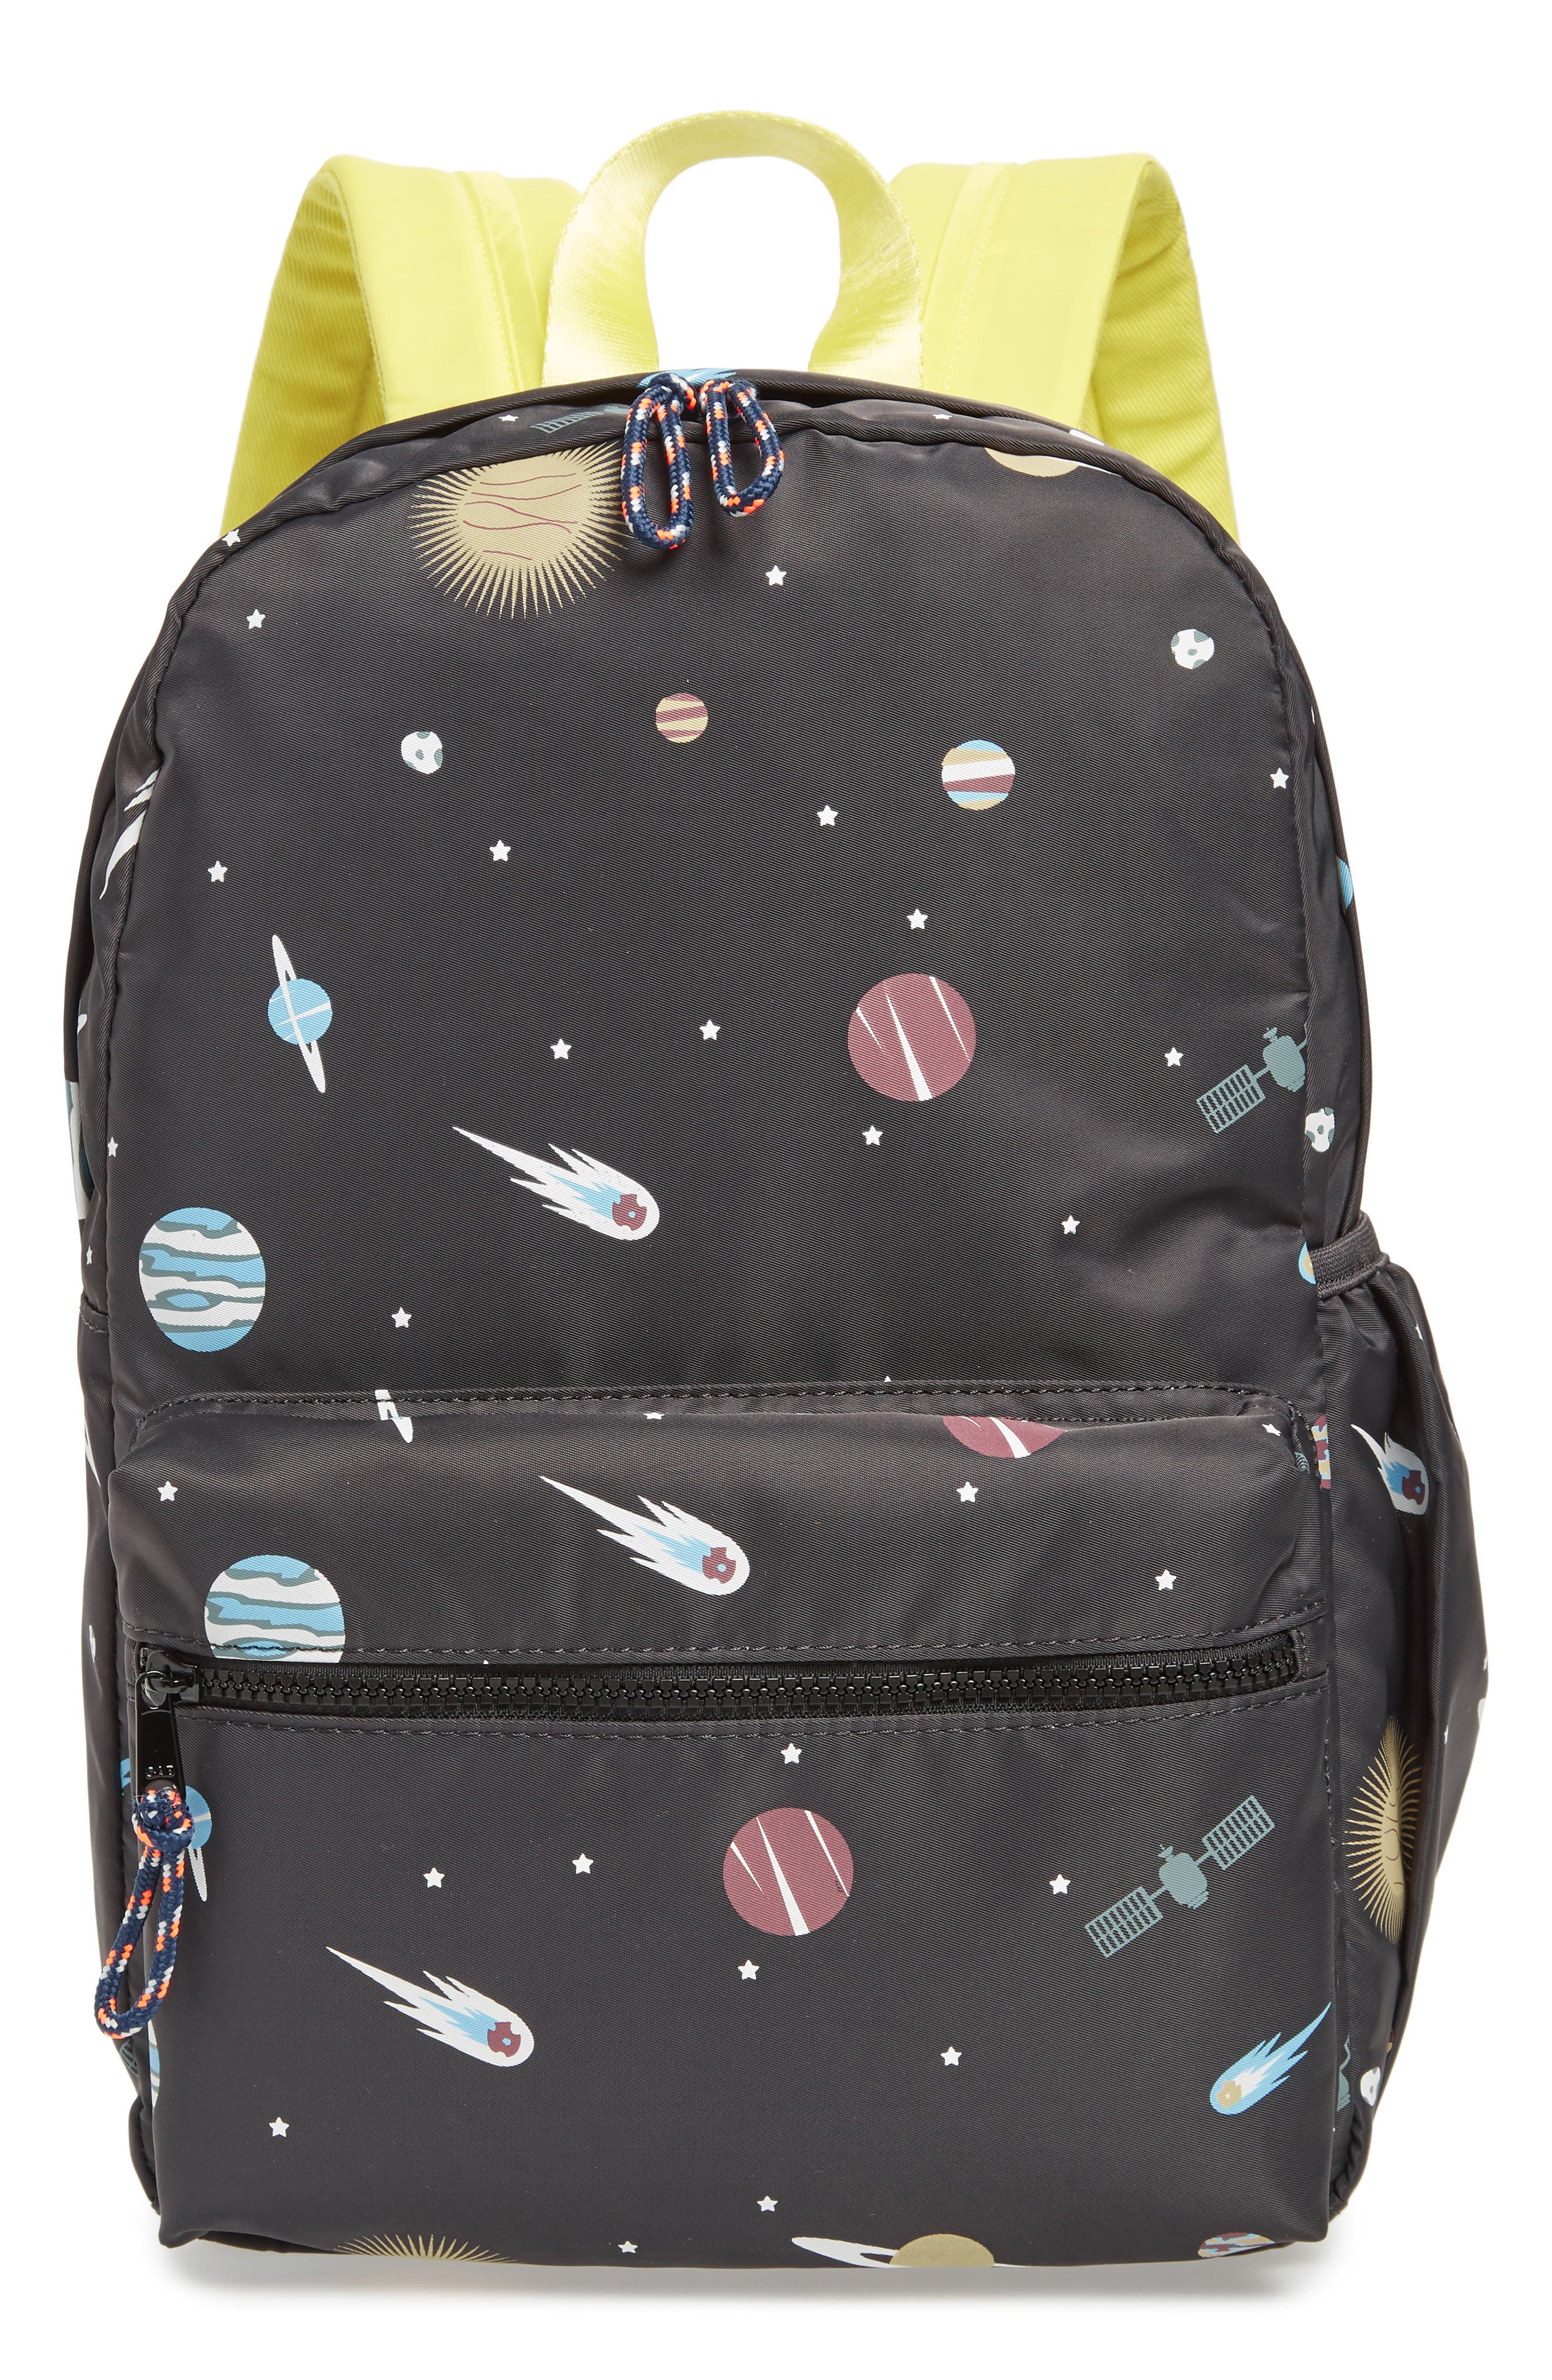 Glow in the Dark Space Print Backpack,                         Main,                         color,